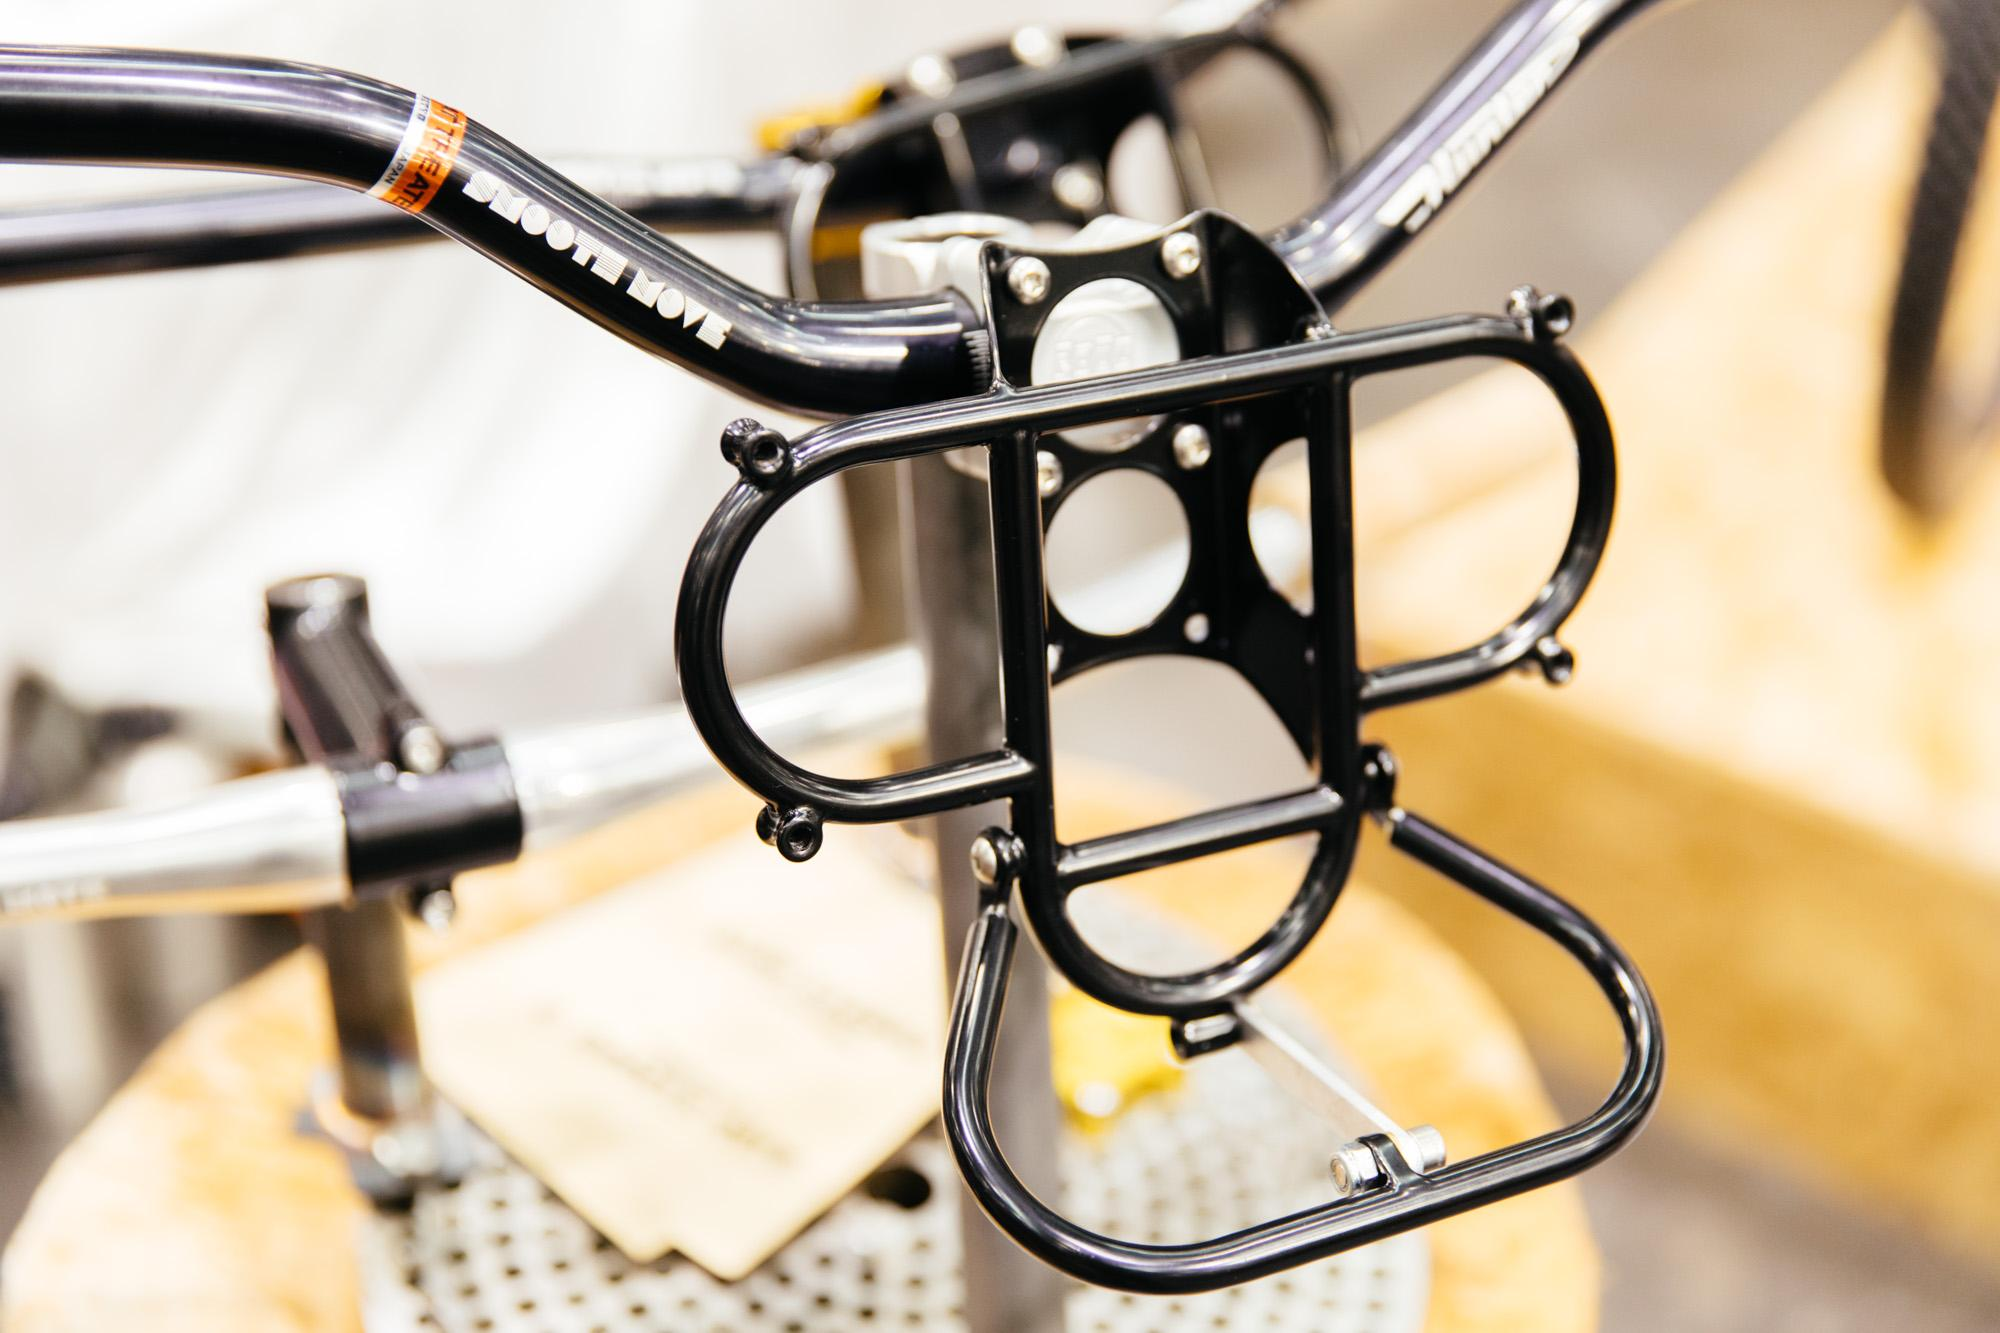 Hunter Cycles and Paul stem-mounted mini rack... the coolest thing at the show!